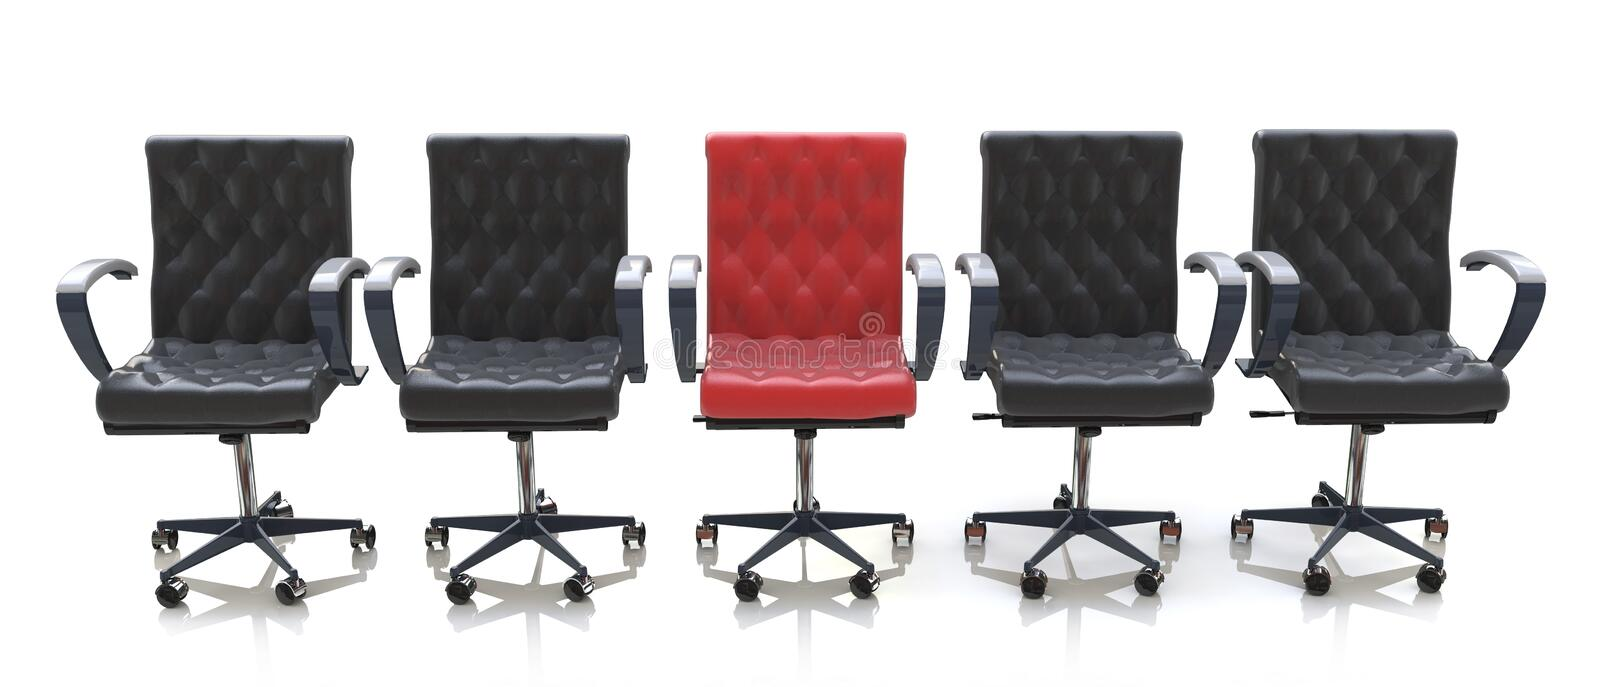 Red office chair among black chairs isolated on white background royalty free illustration